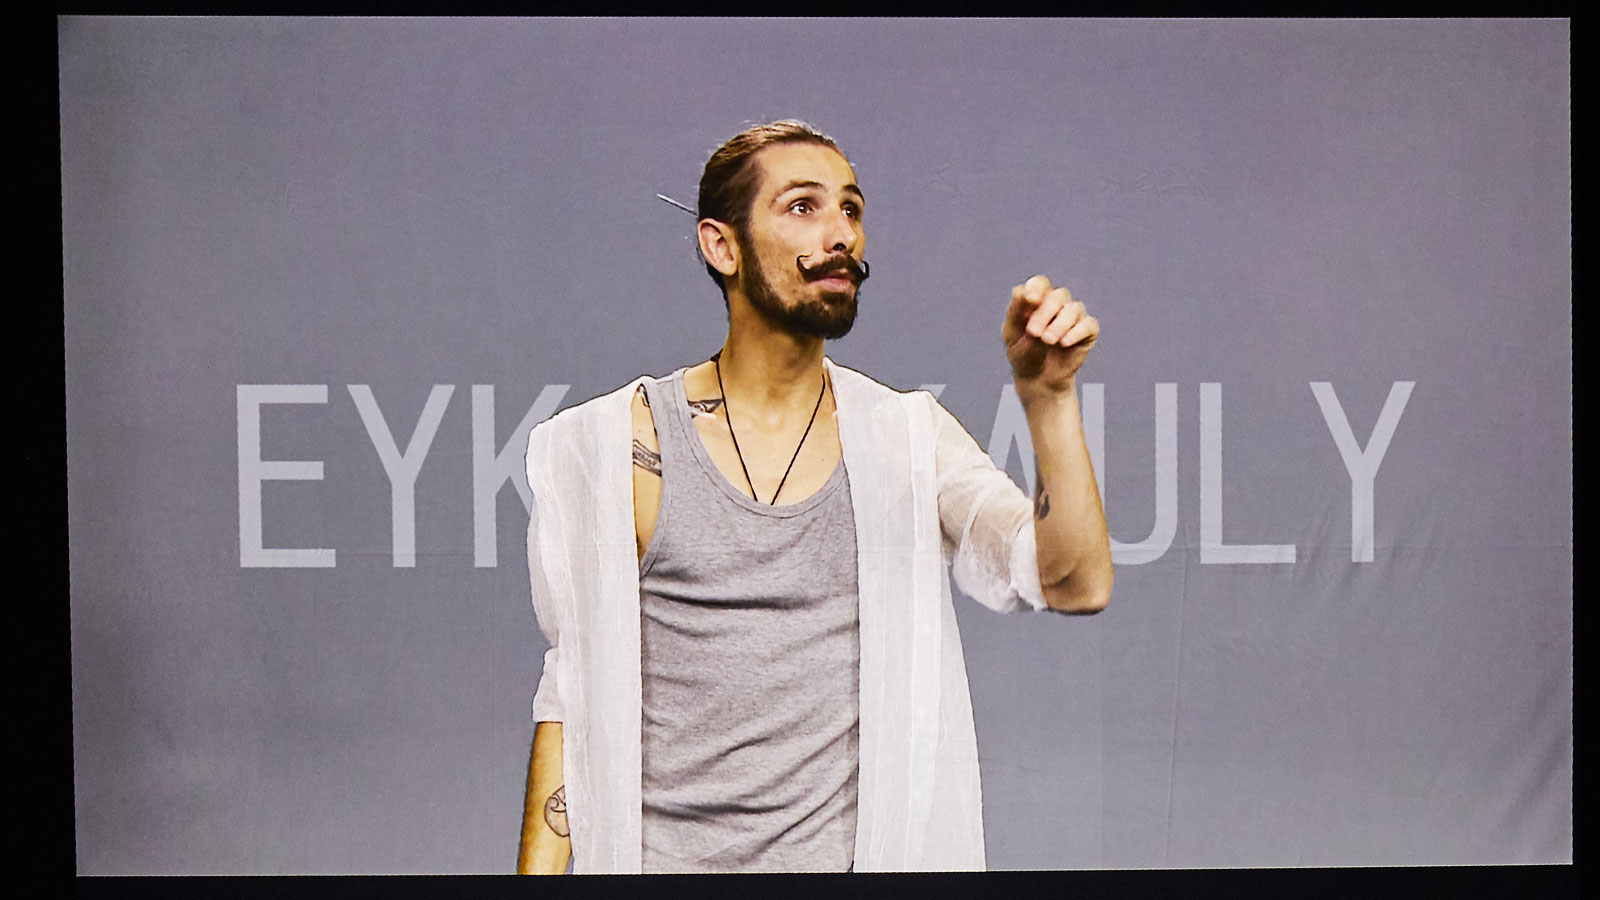 At the ALL IN Symposium. Eyk Kauly's performance. His video is projected onto the stage. ©Anna Spindelndreier